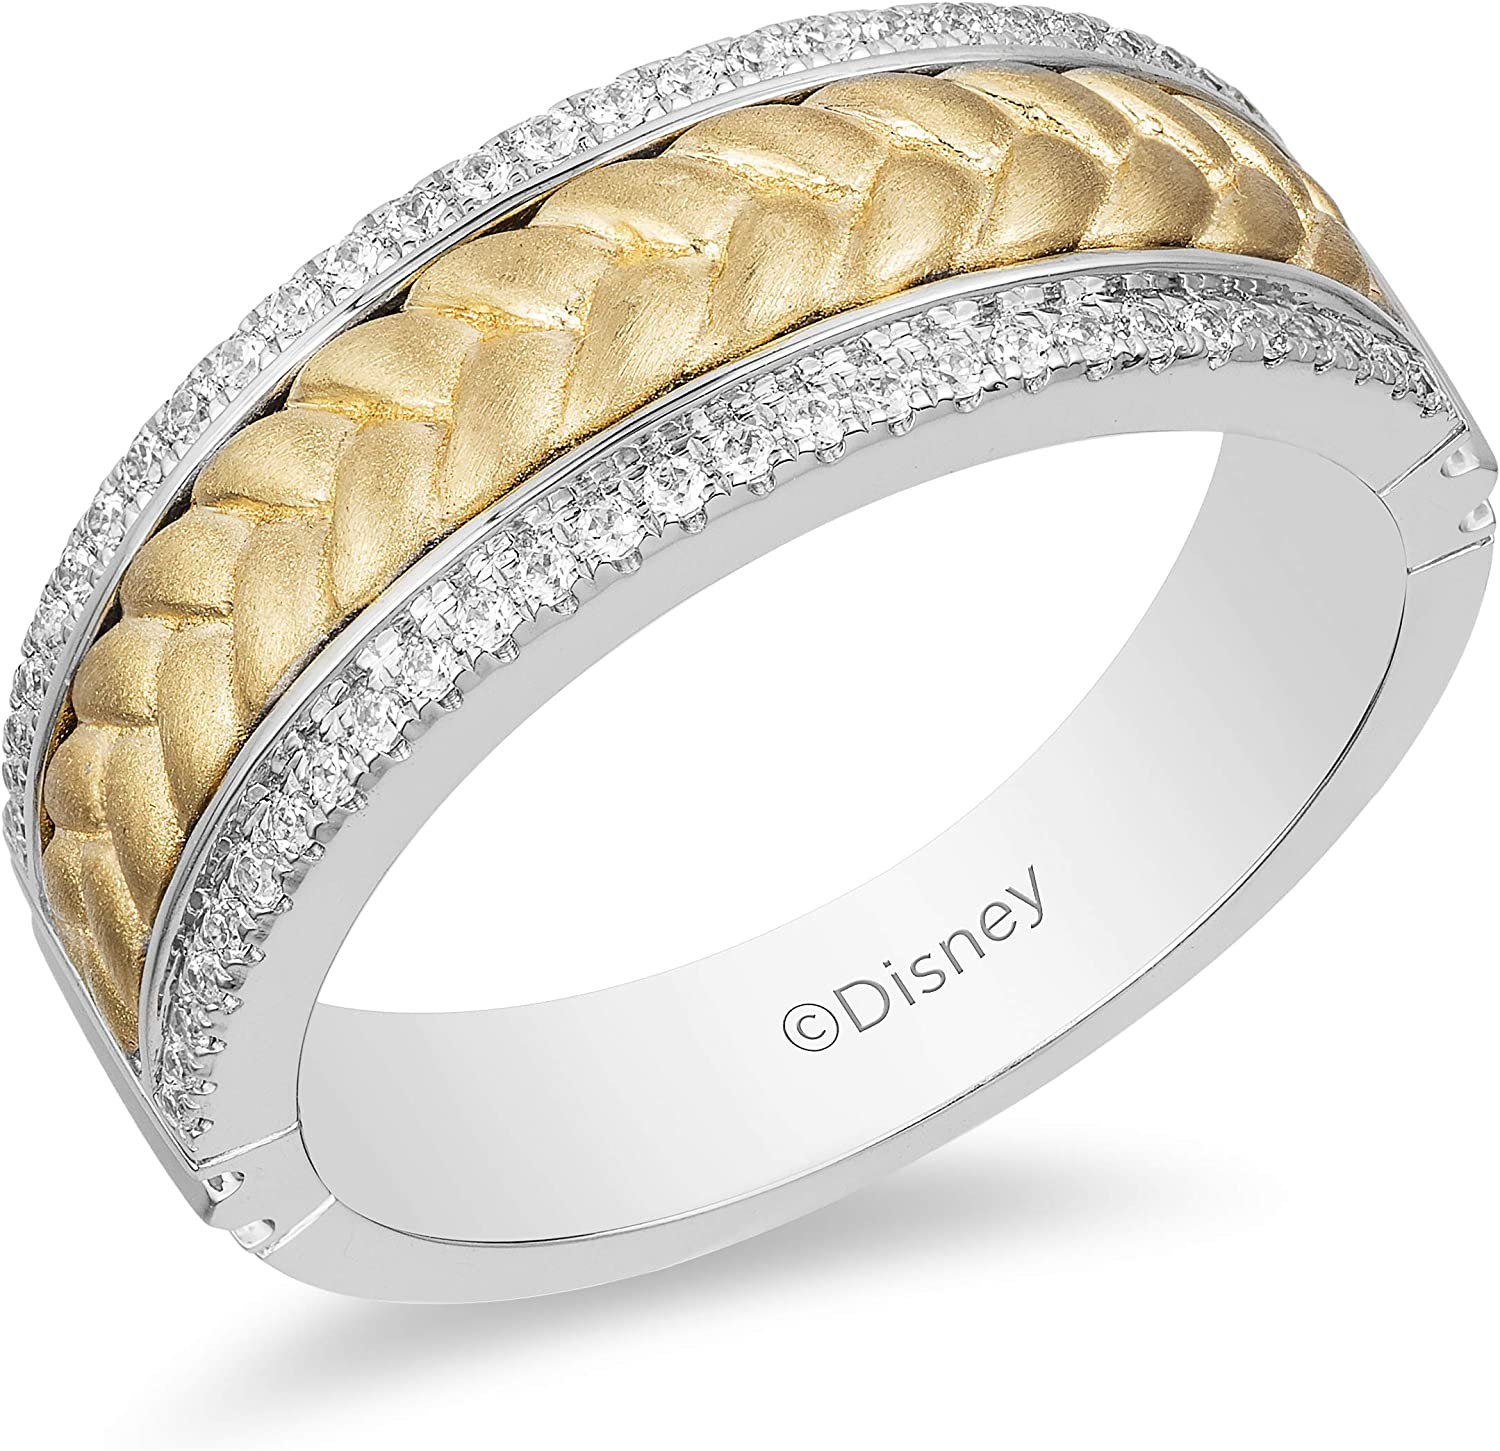 Jewelili Enchanted Disney Fine Jewelry 14k White And Yellow Gold 1 4 Cttw Mens Ring Inspired By Rapunzel Braid Amazon Com